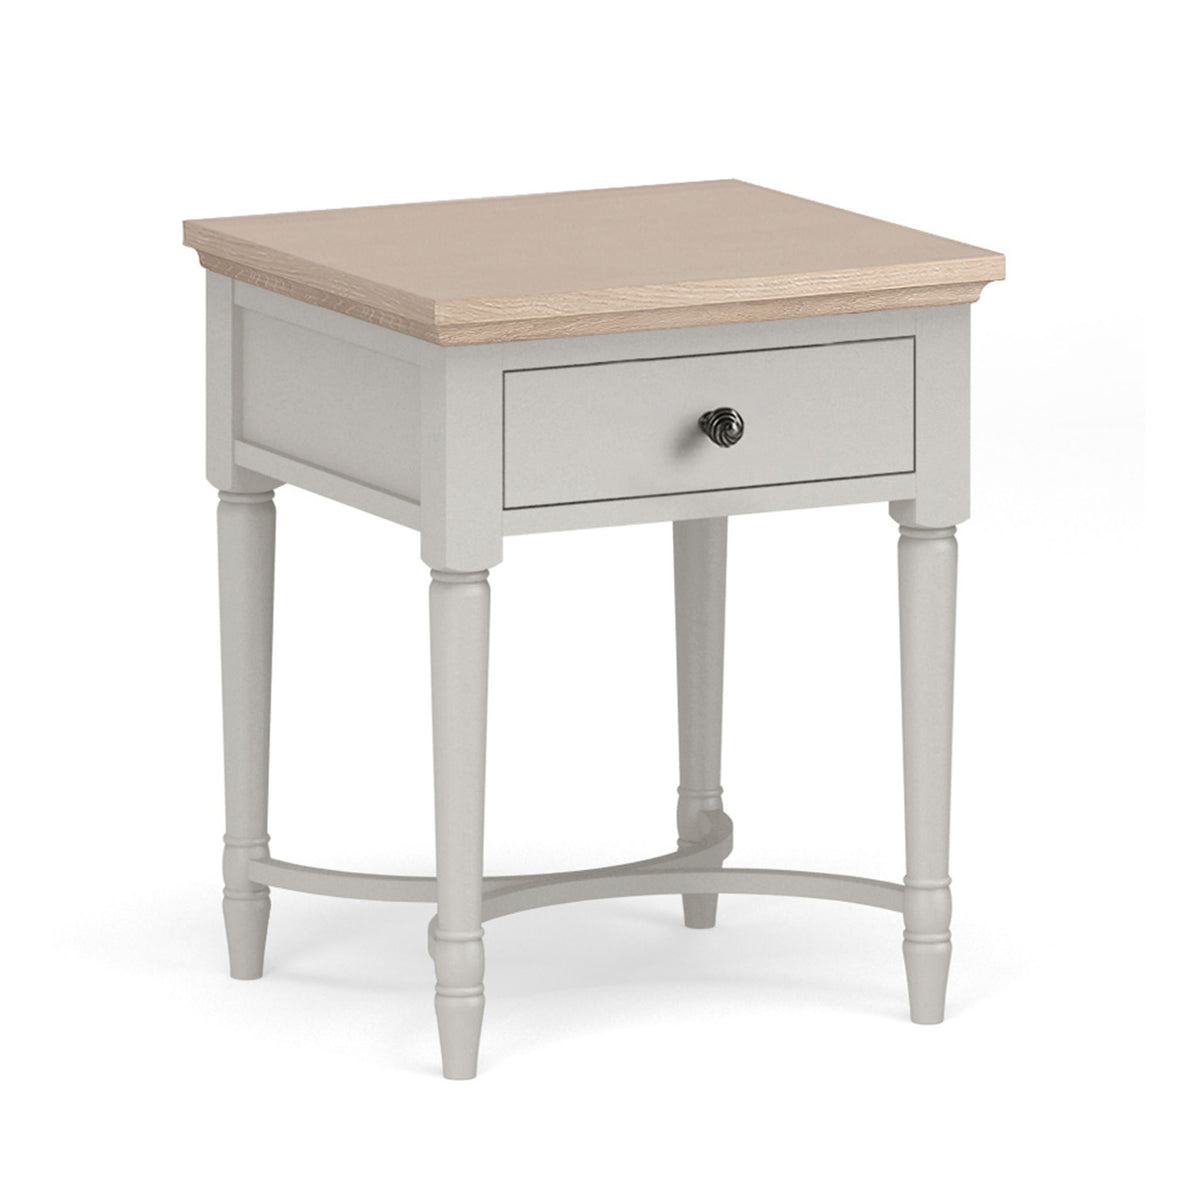 Melrose Grey Lamp Table from Roseland Furniture